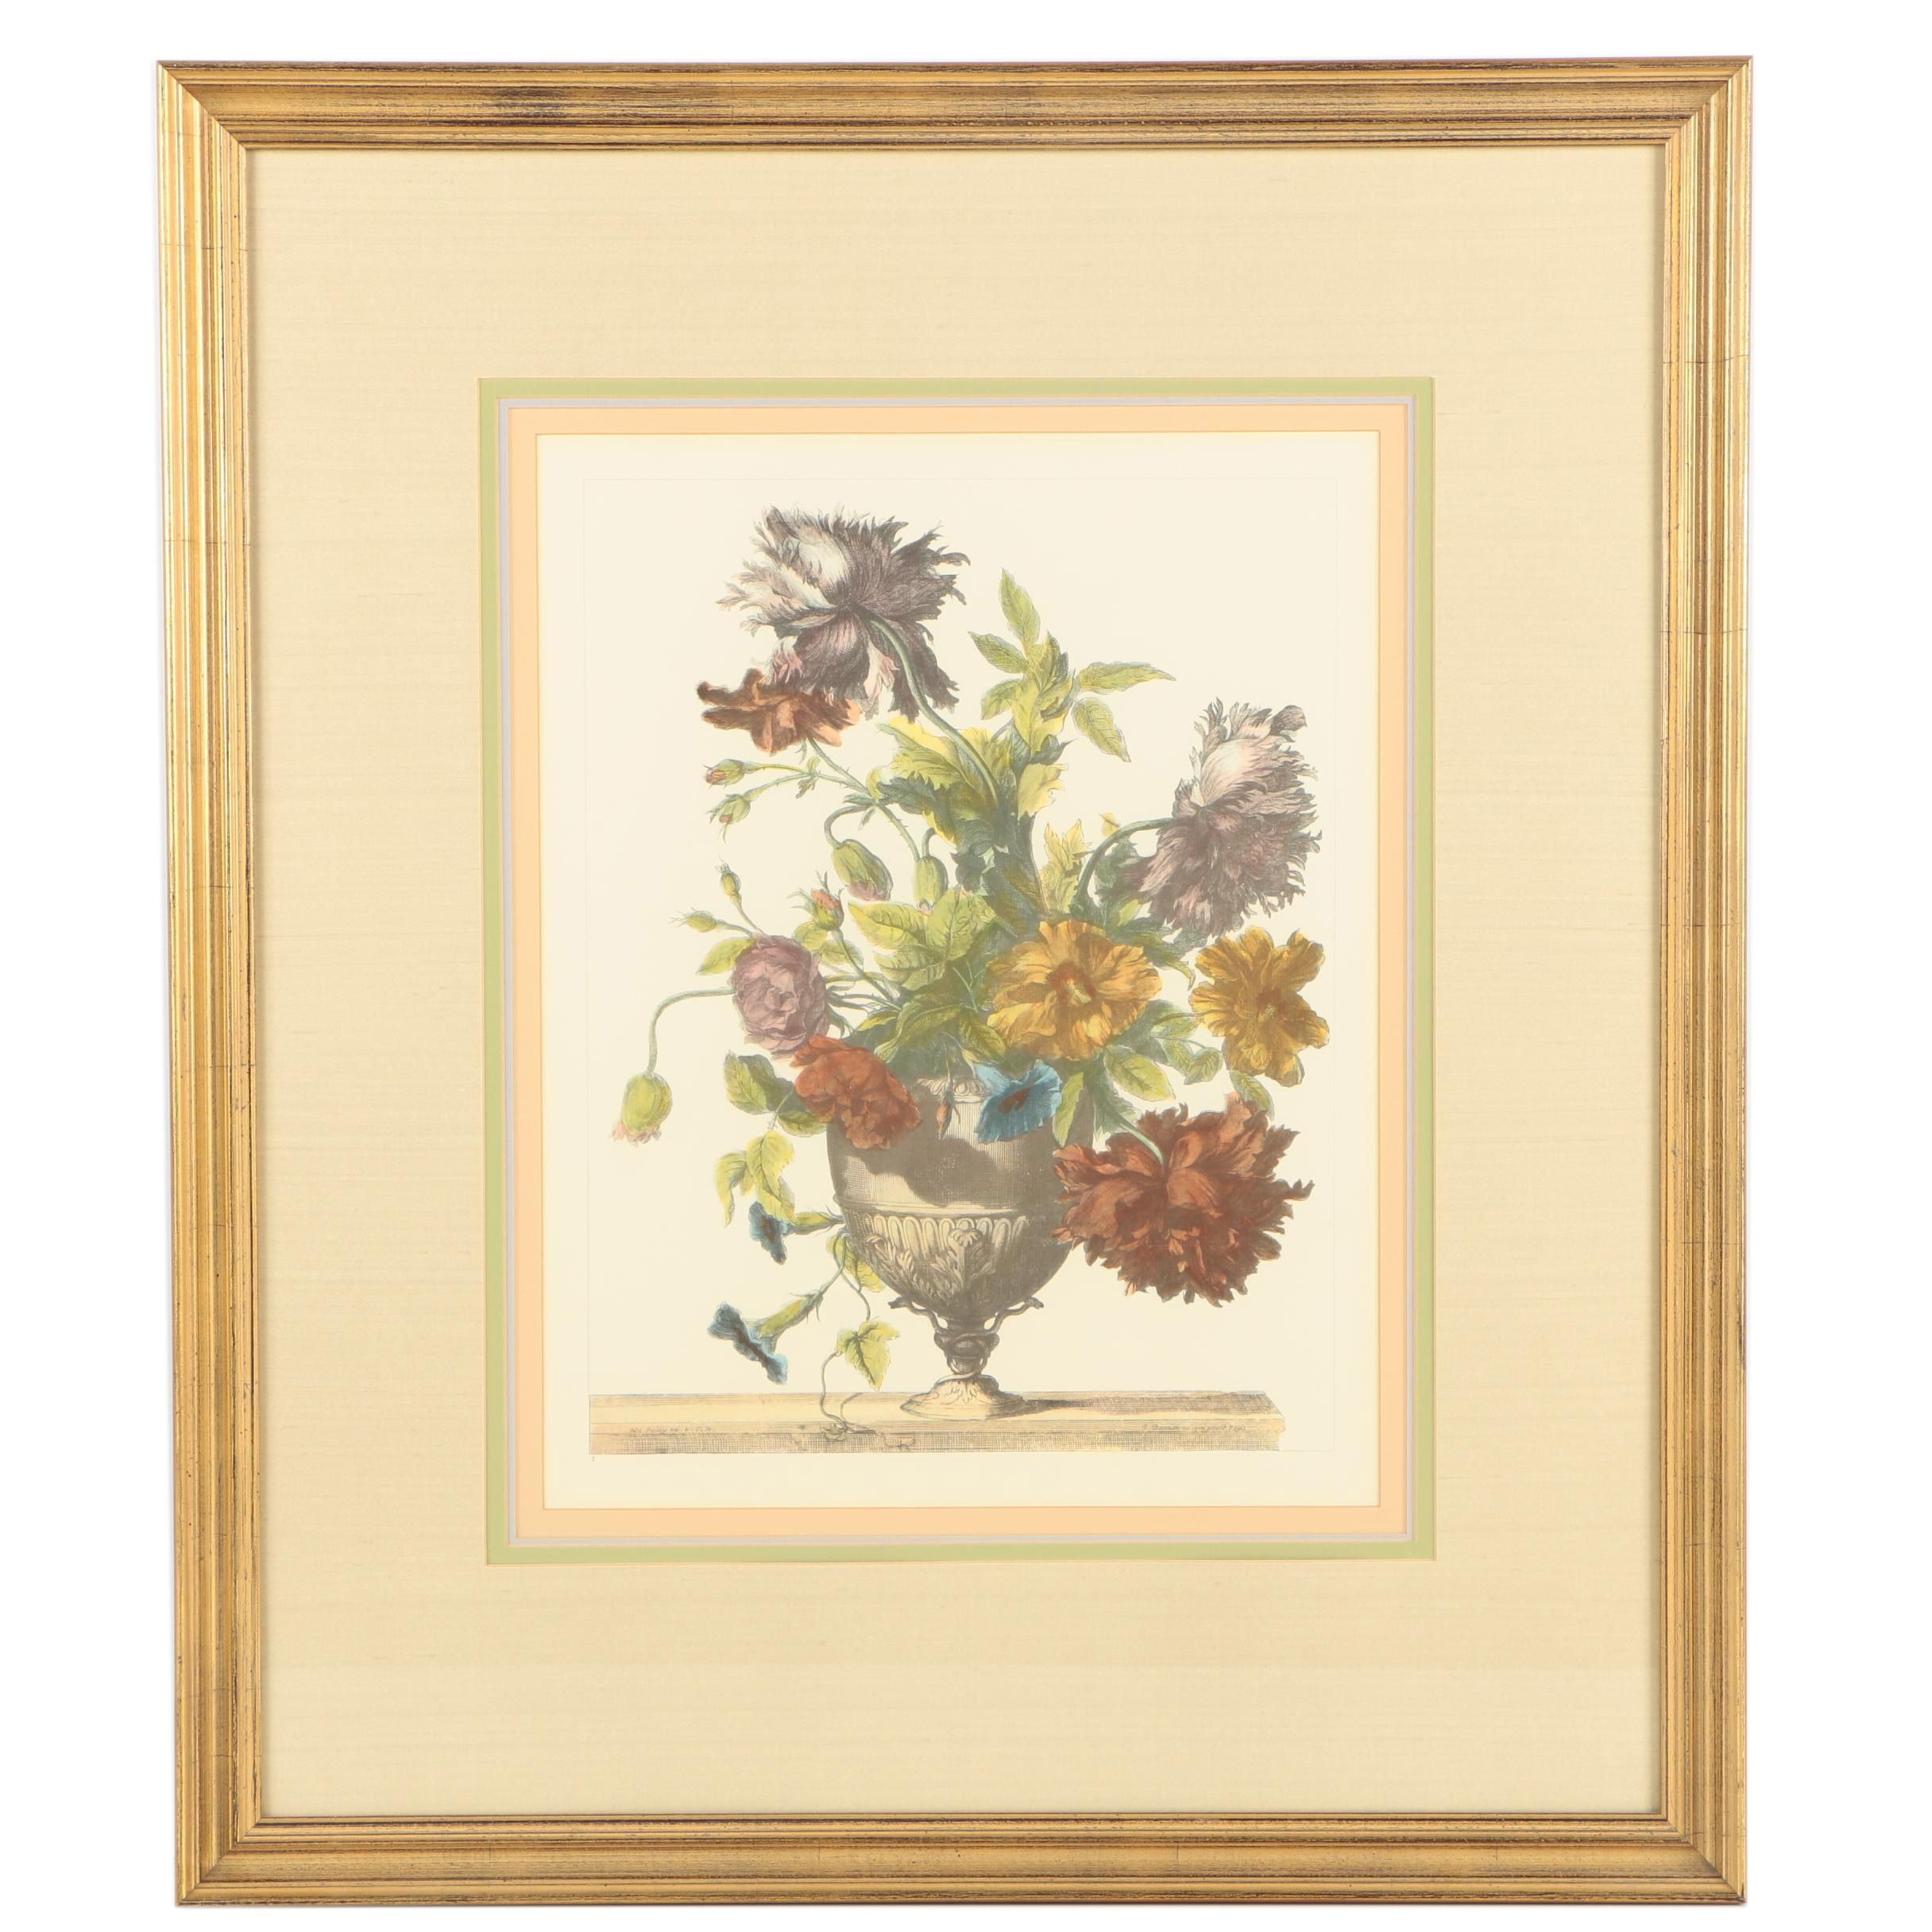 Hand Colored Offset Lithograph After Jean-Baptiste Monnoyer's Floral Still Life